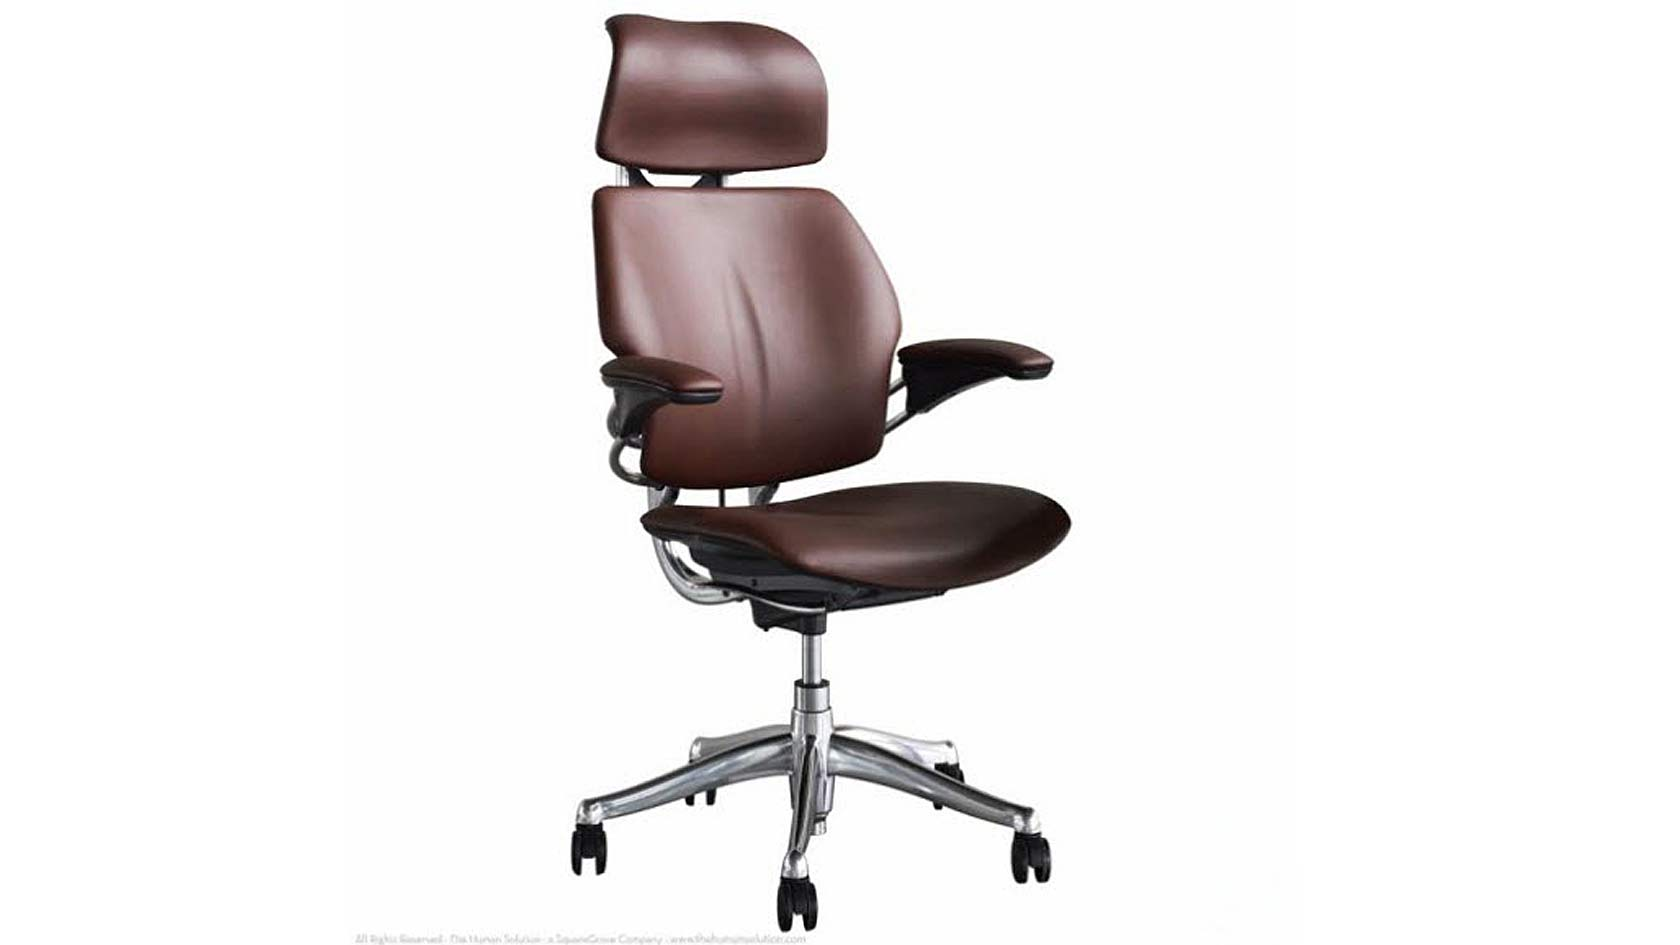 Freedom Task Chair | Humanscale Freedom Chair | Humanscale Freedom Chair Review